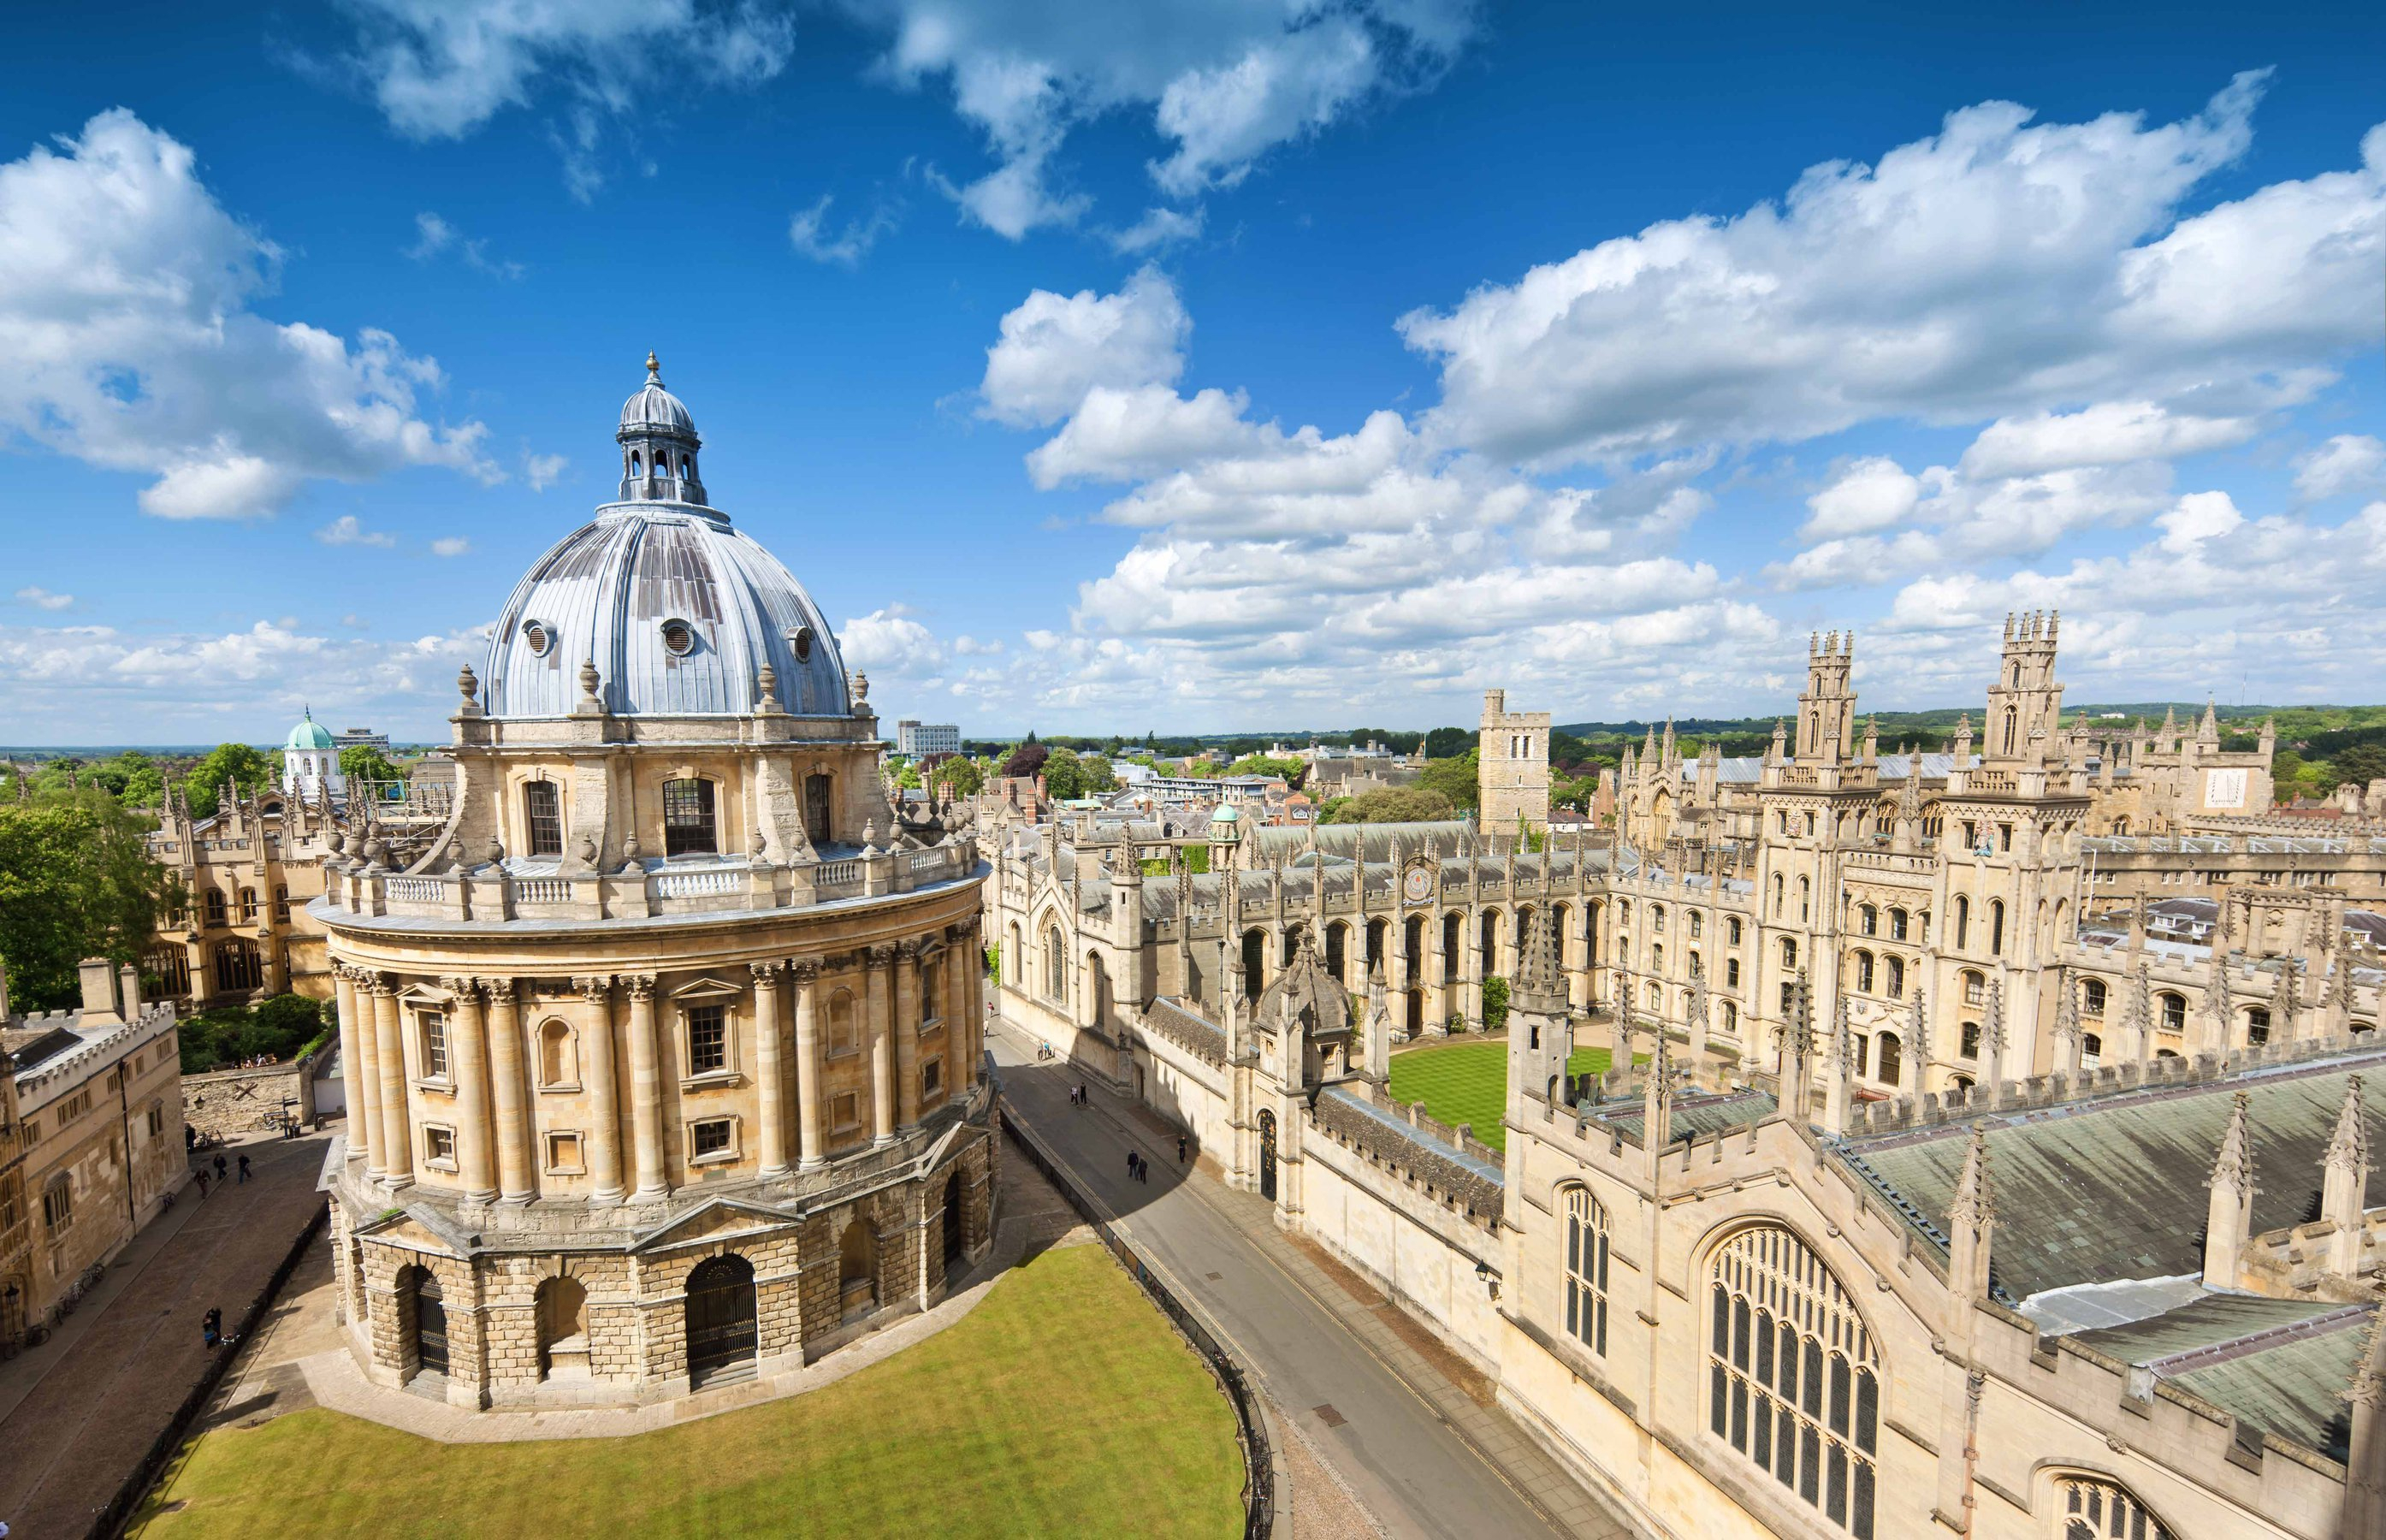 The dome structure in Radcliffe Square at the Oxford University campus